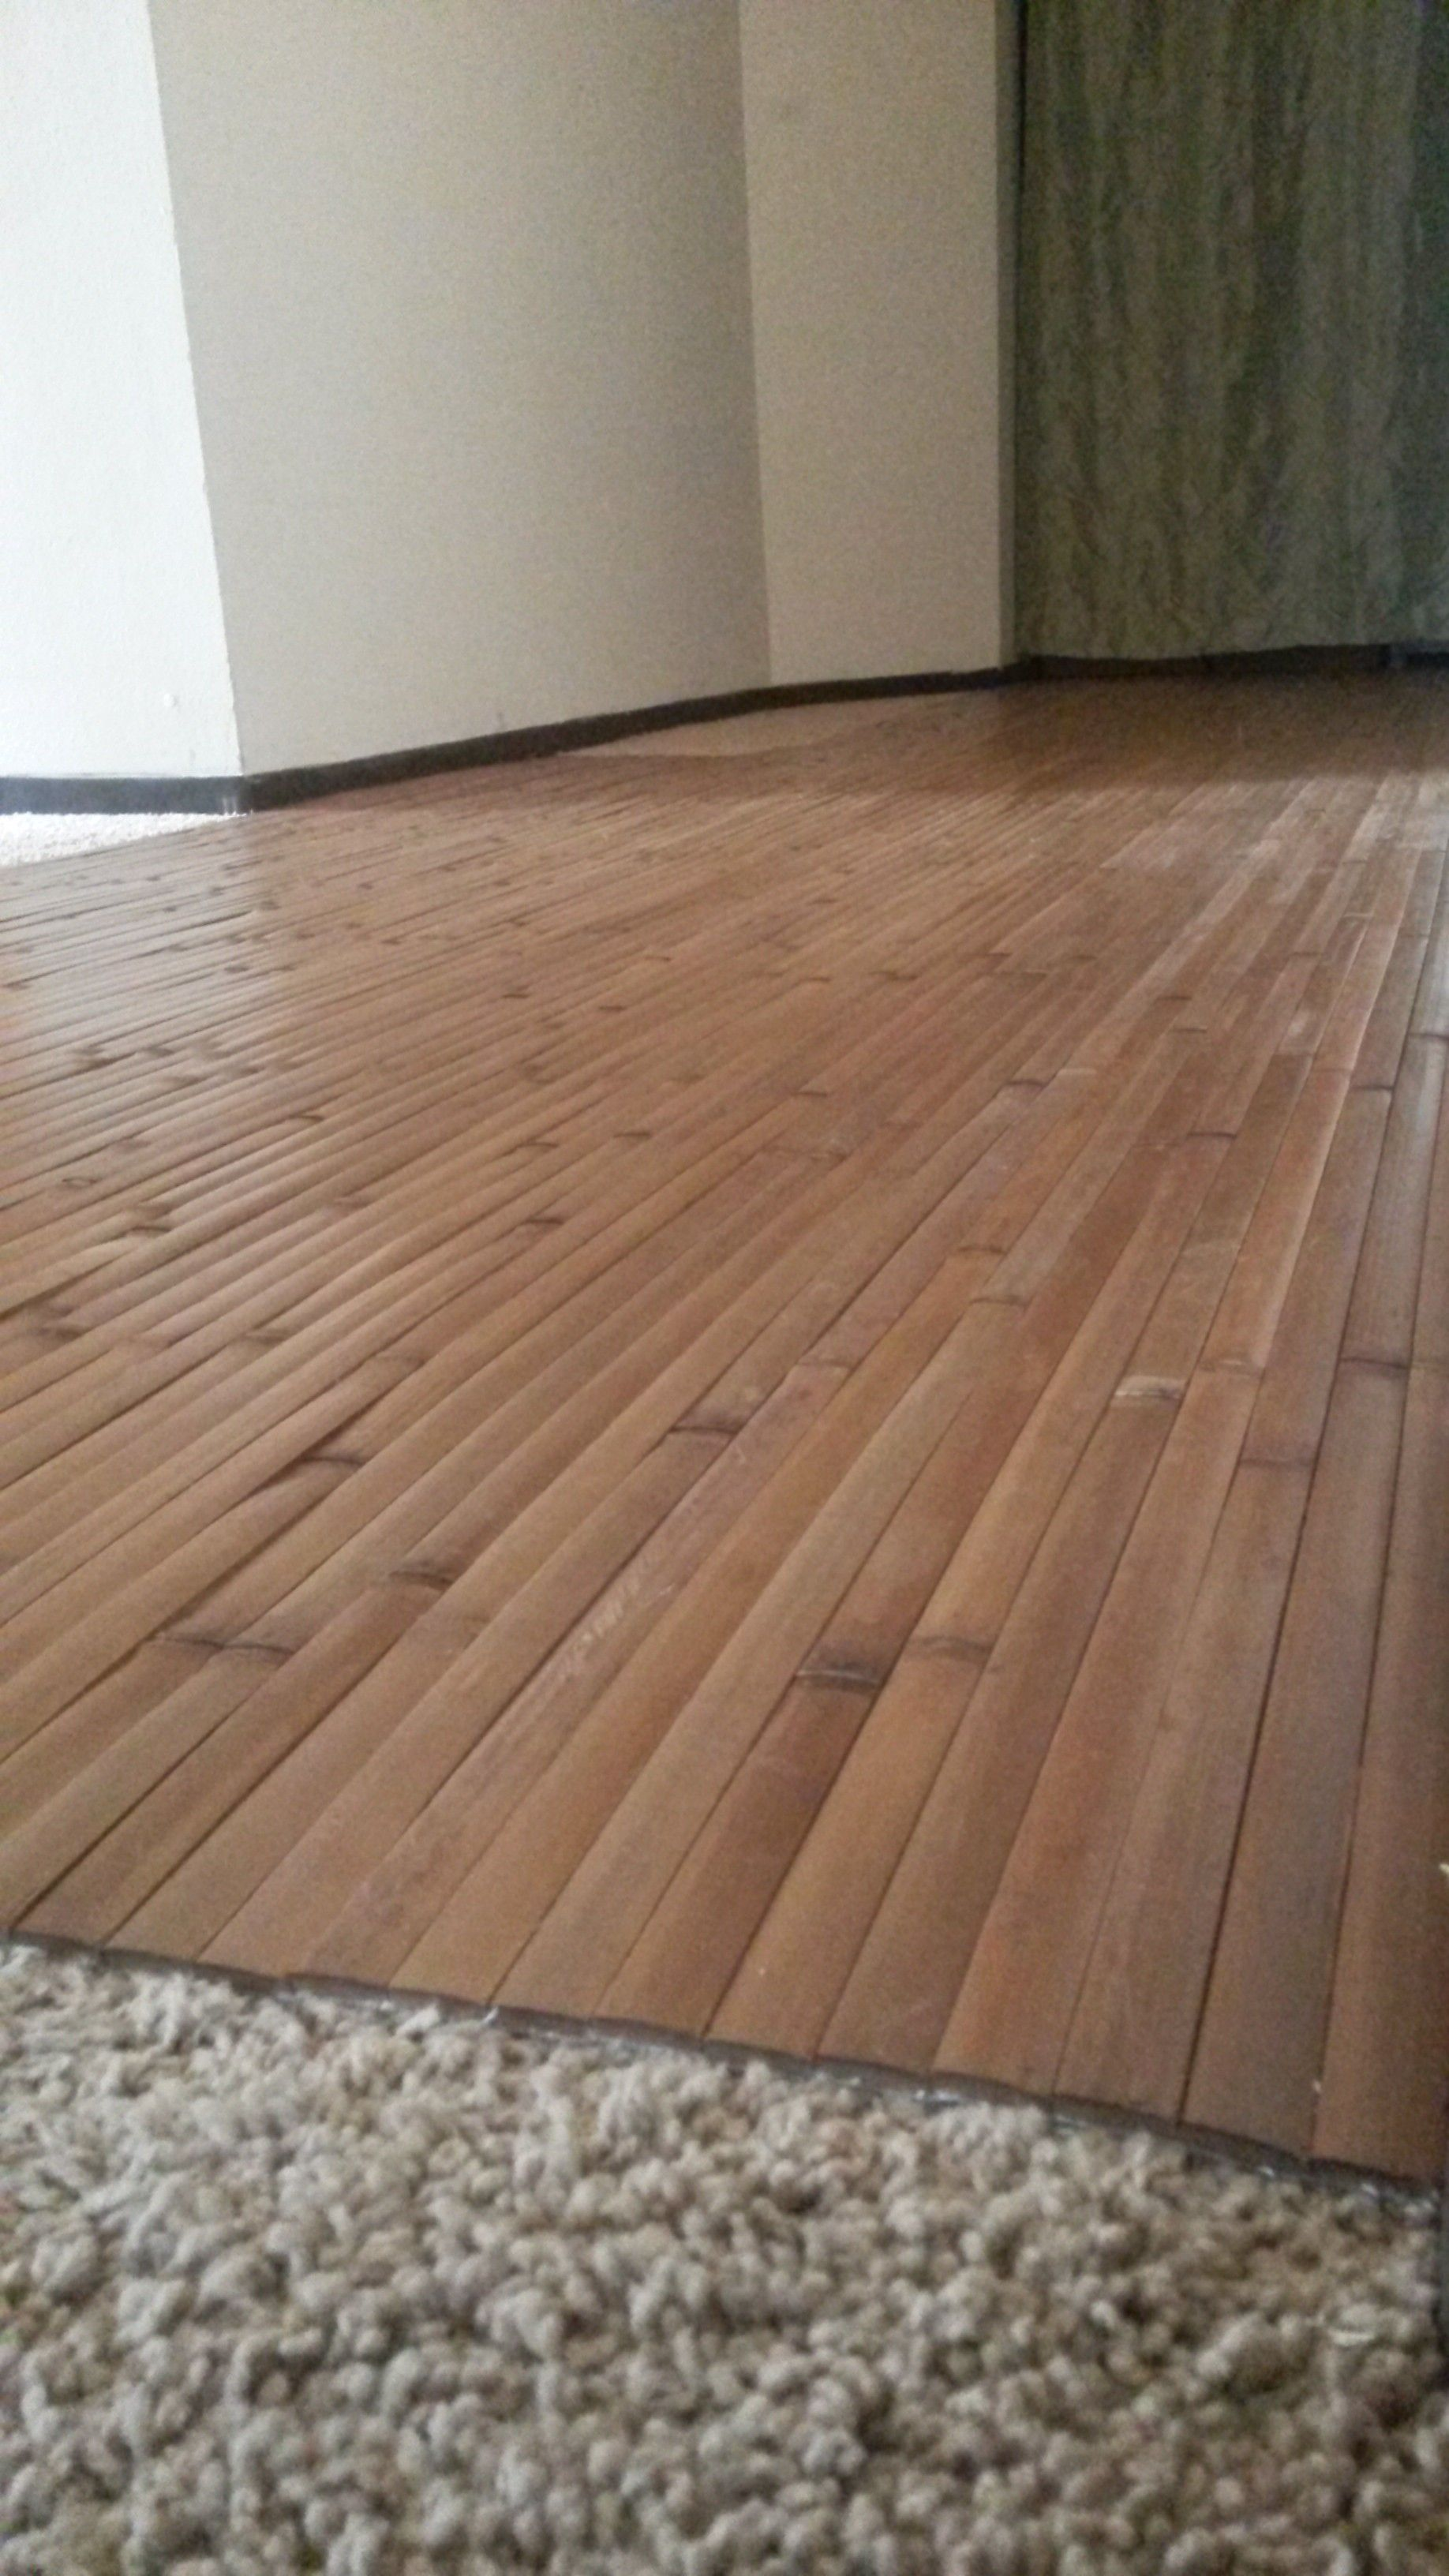 Temporary vinyl floor tiles httpnextsoft21 pinterest temporary interlocking floor tiles you can find many points to consider if youre contemplating installing tile flooring o doublecrazyfo Gallery